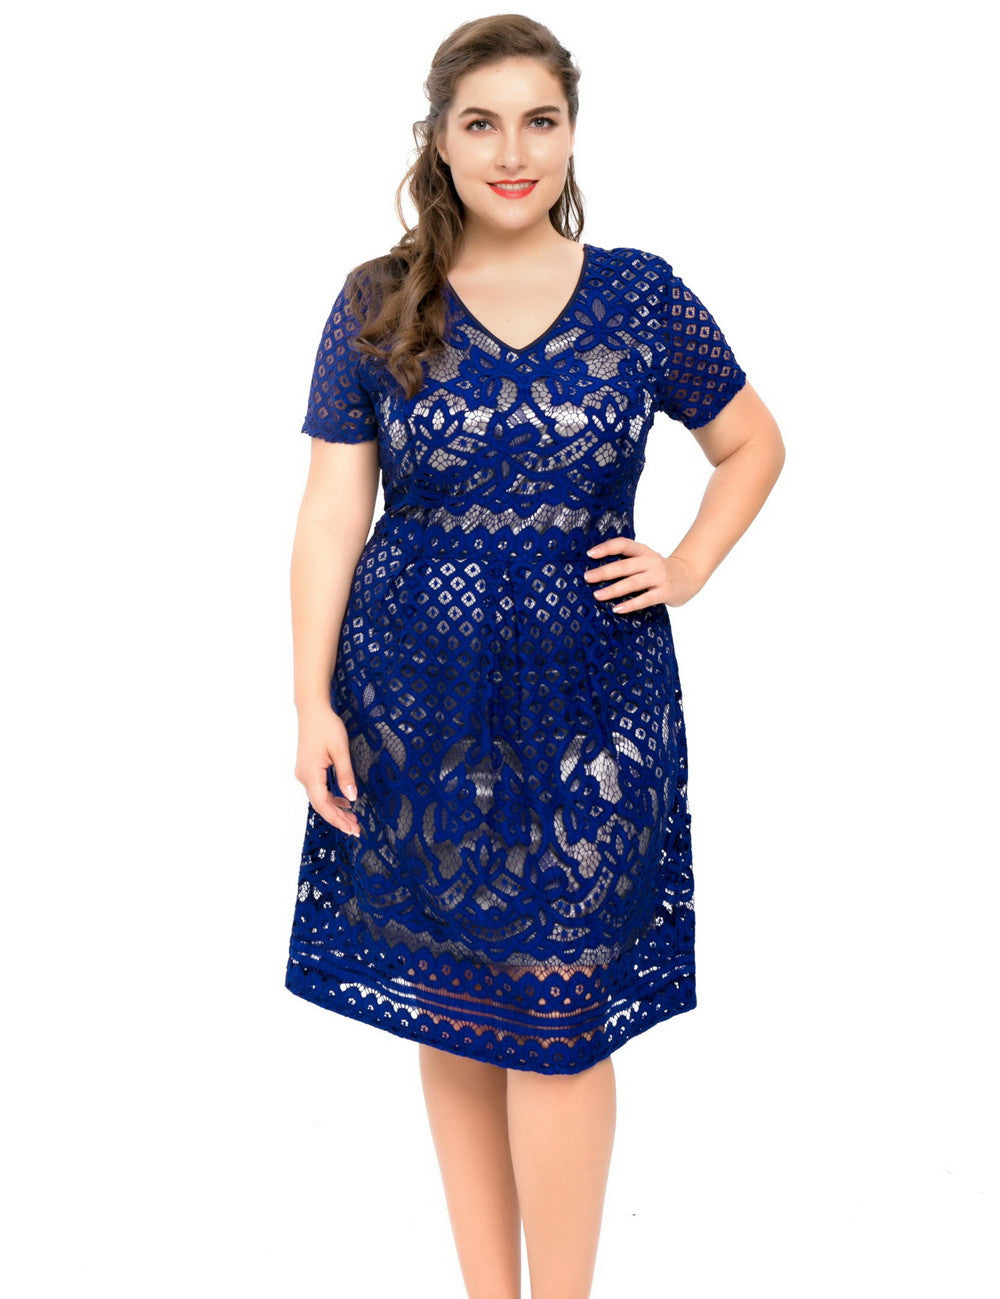 Women's Lined Plus Size Floral Lace Skater Dress Full Figured Decorative 1X-4X